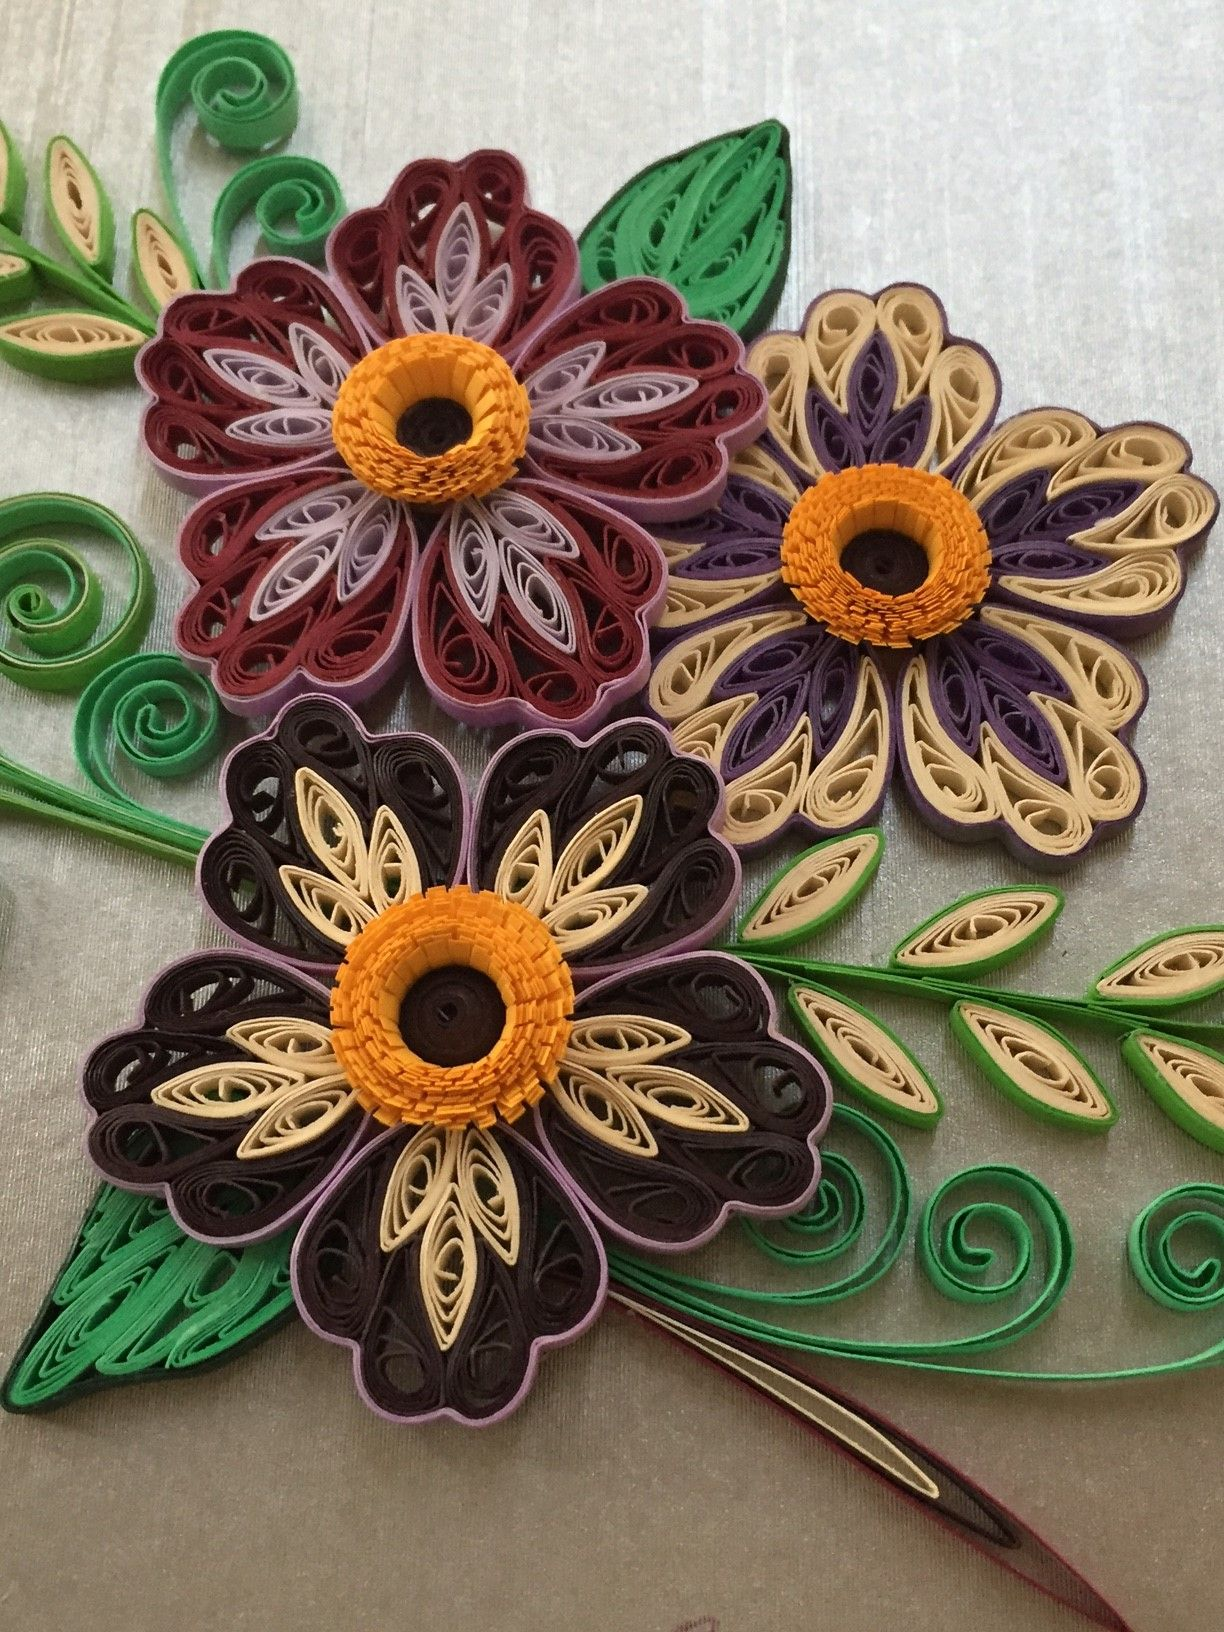 Quilling Flowers By Canan Ersoz Paper Quilling Flowers Quilling Flowers Paper Quilling Jewelry